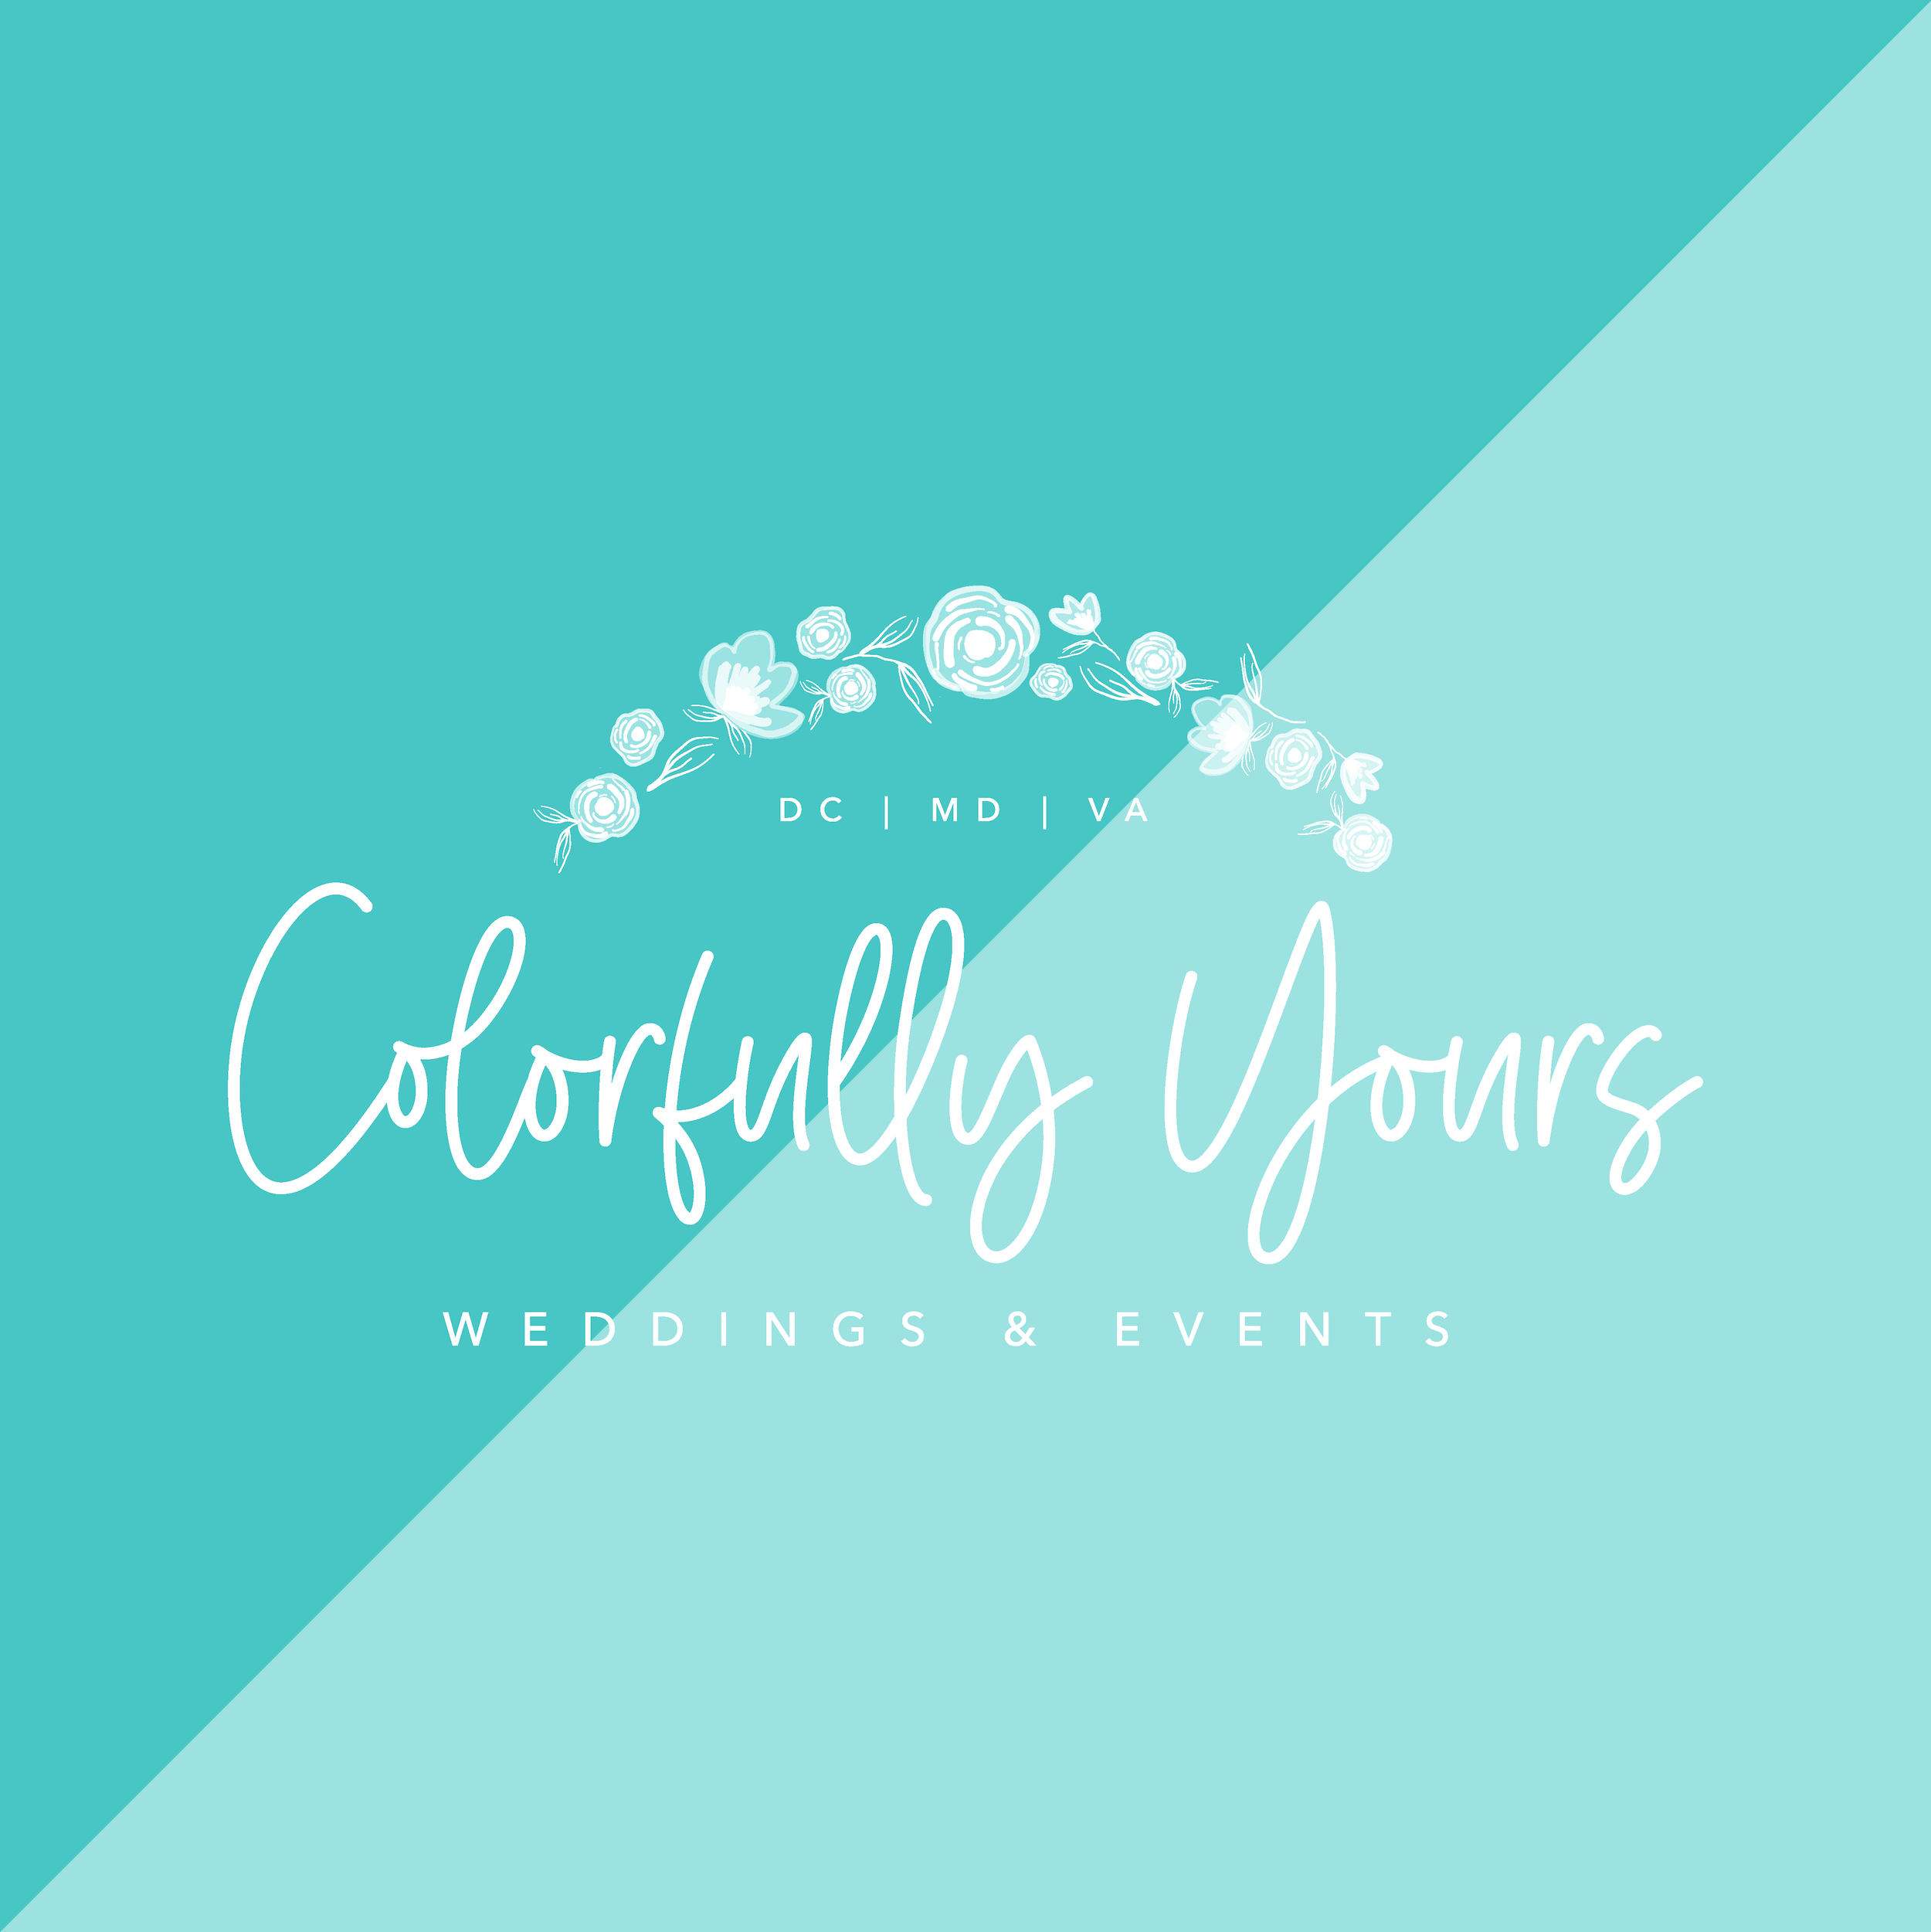 colorfully yours wedding and event planner washington dc virginia maryland brand and logo design by kindly by kelsea